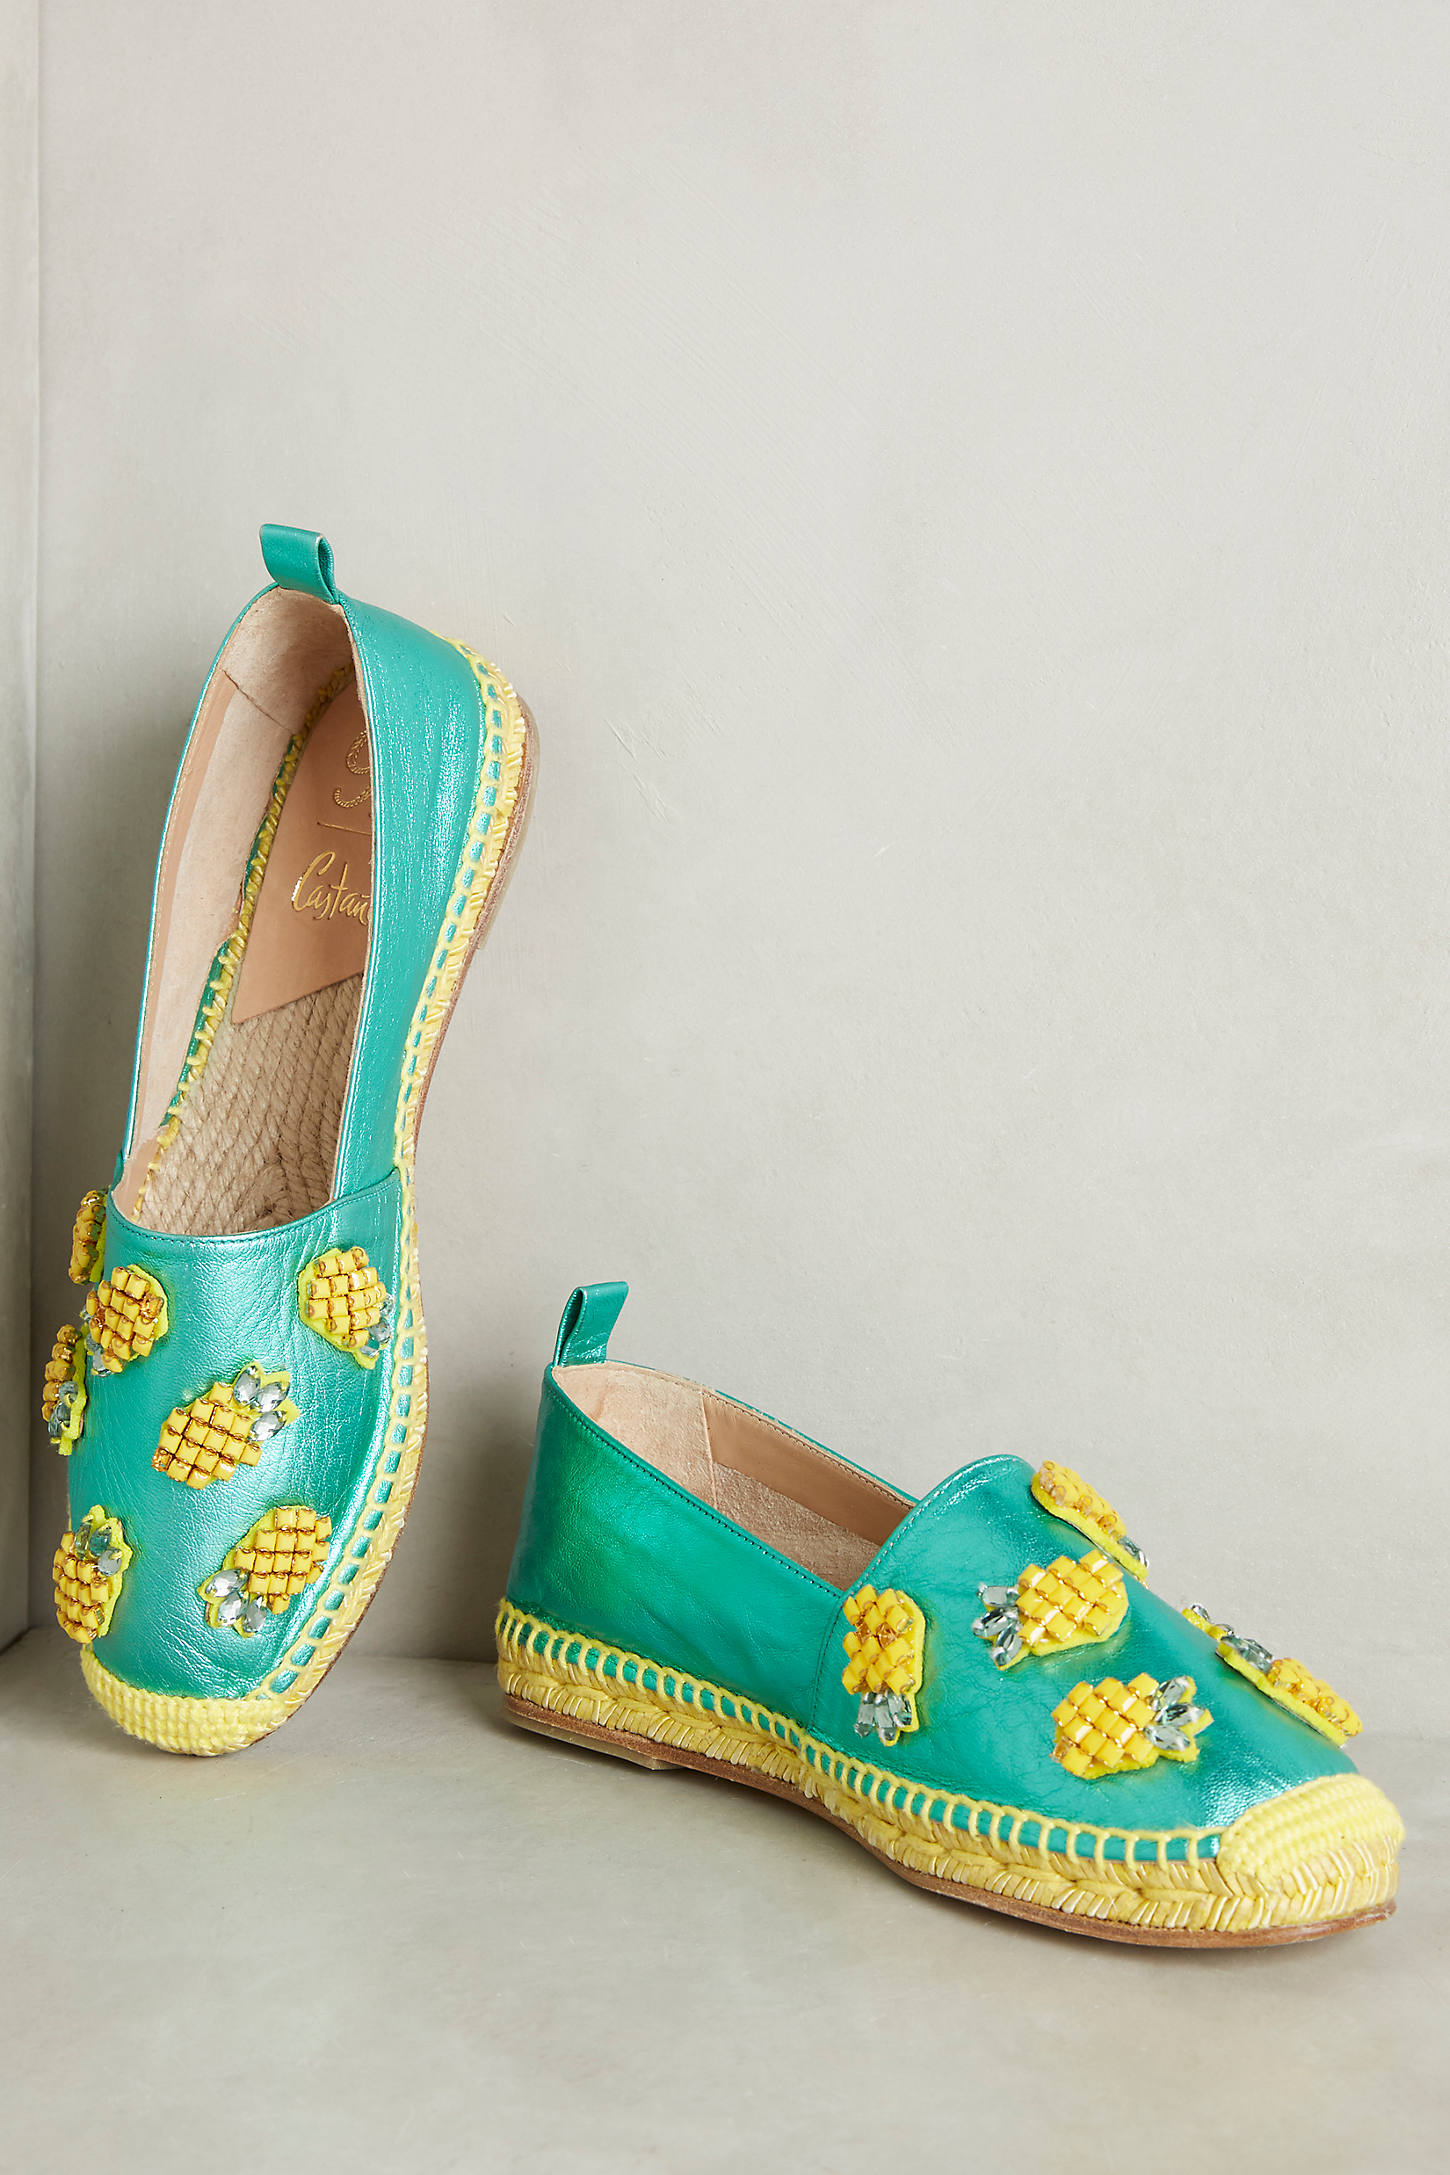 Castaner Beaded Pineapple Espadrilles